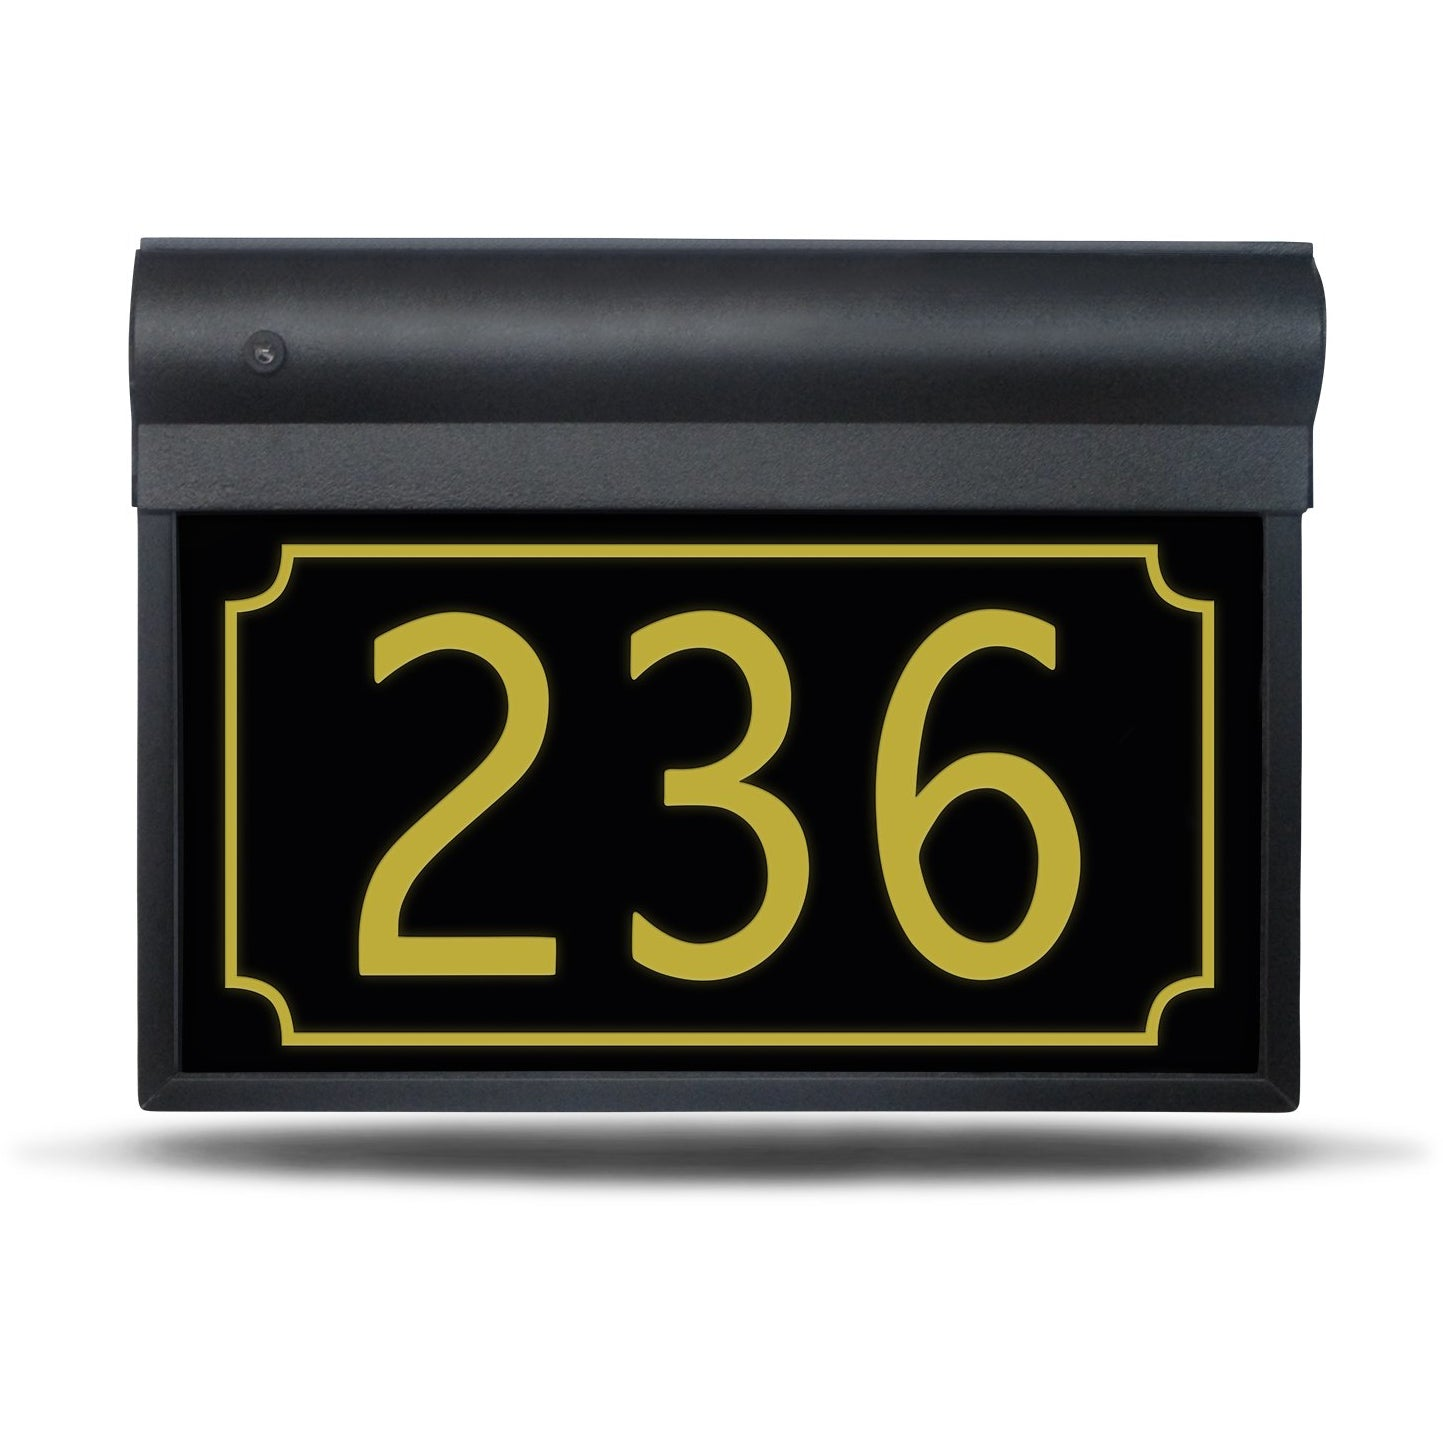 SL-201-14'' – Enlight Border with Bevel – Illuminated Address Sign